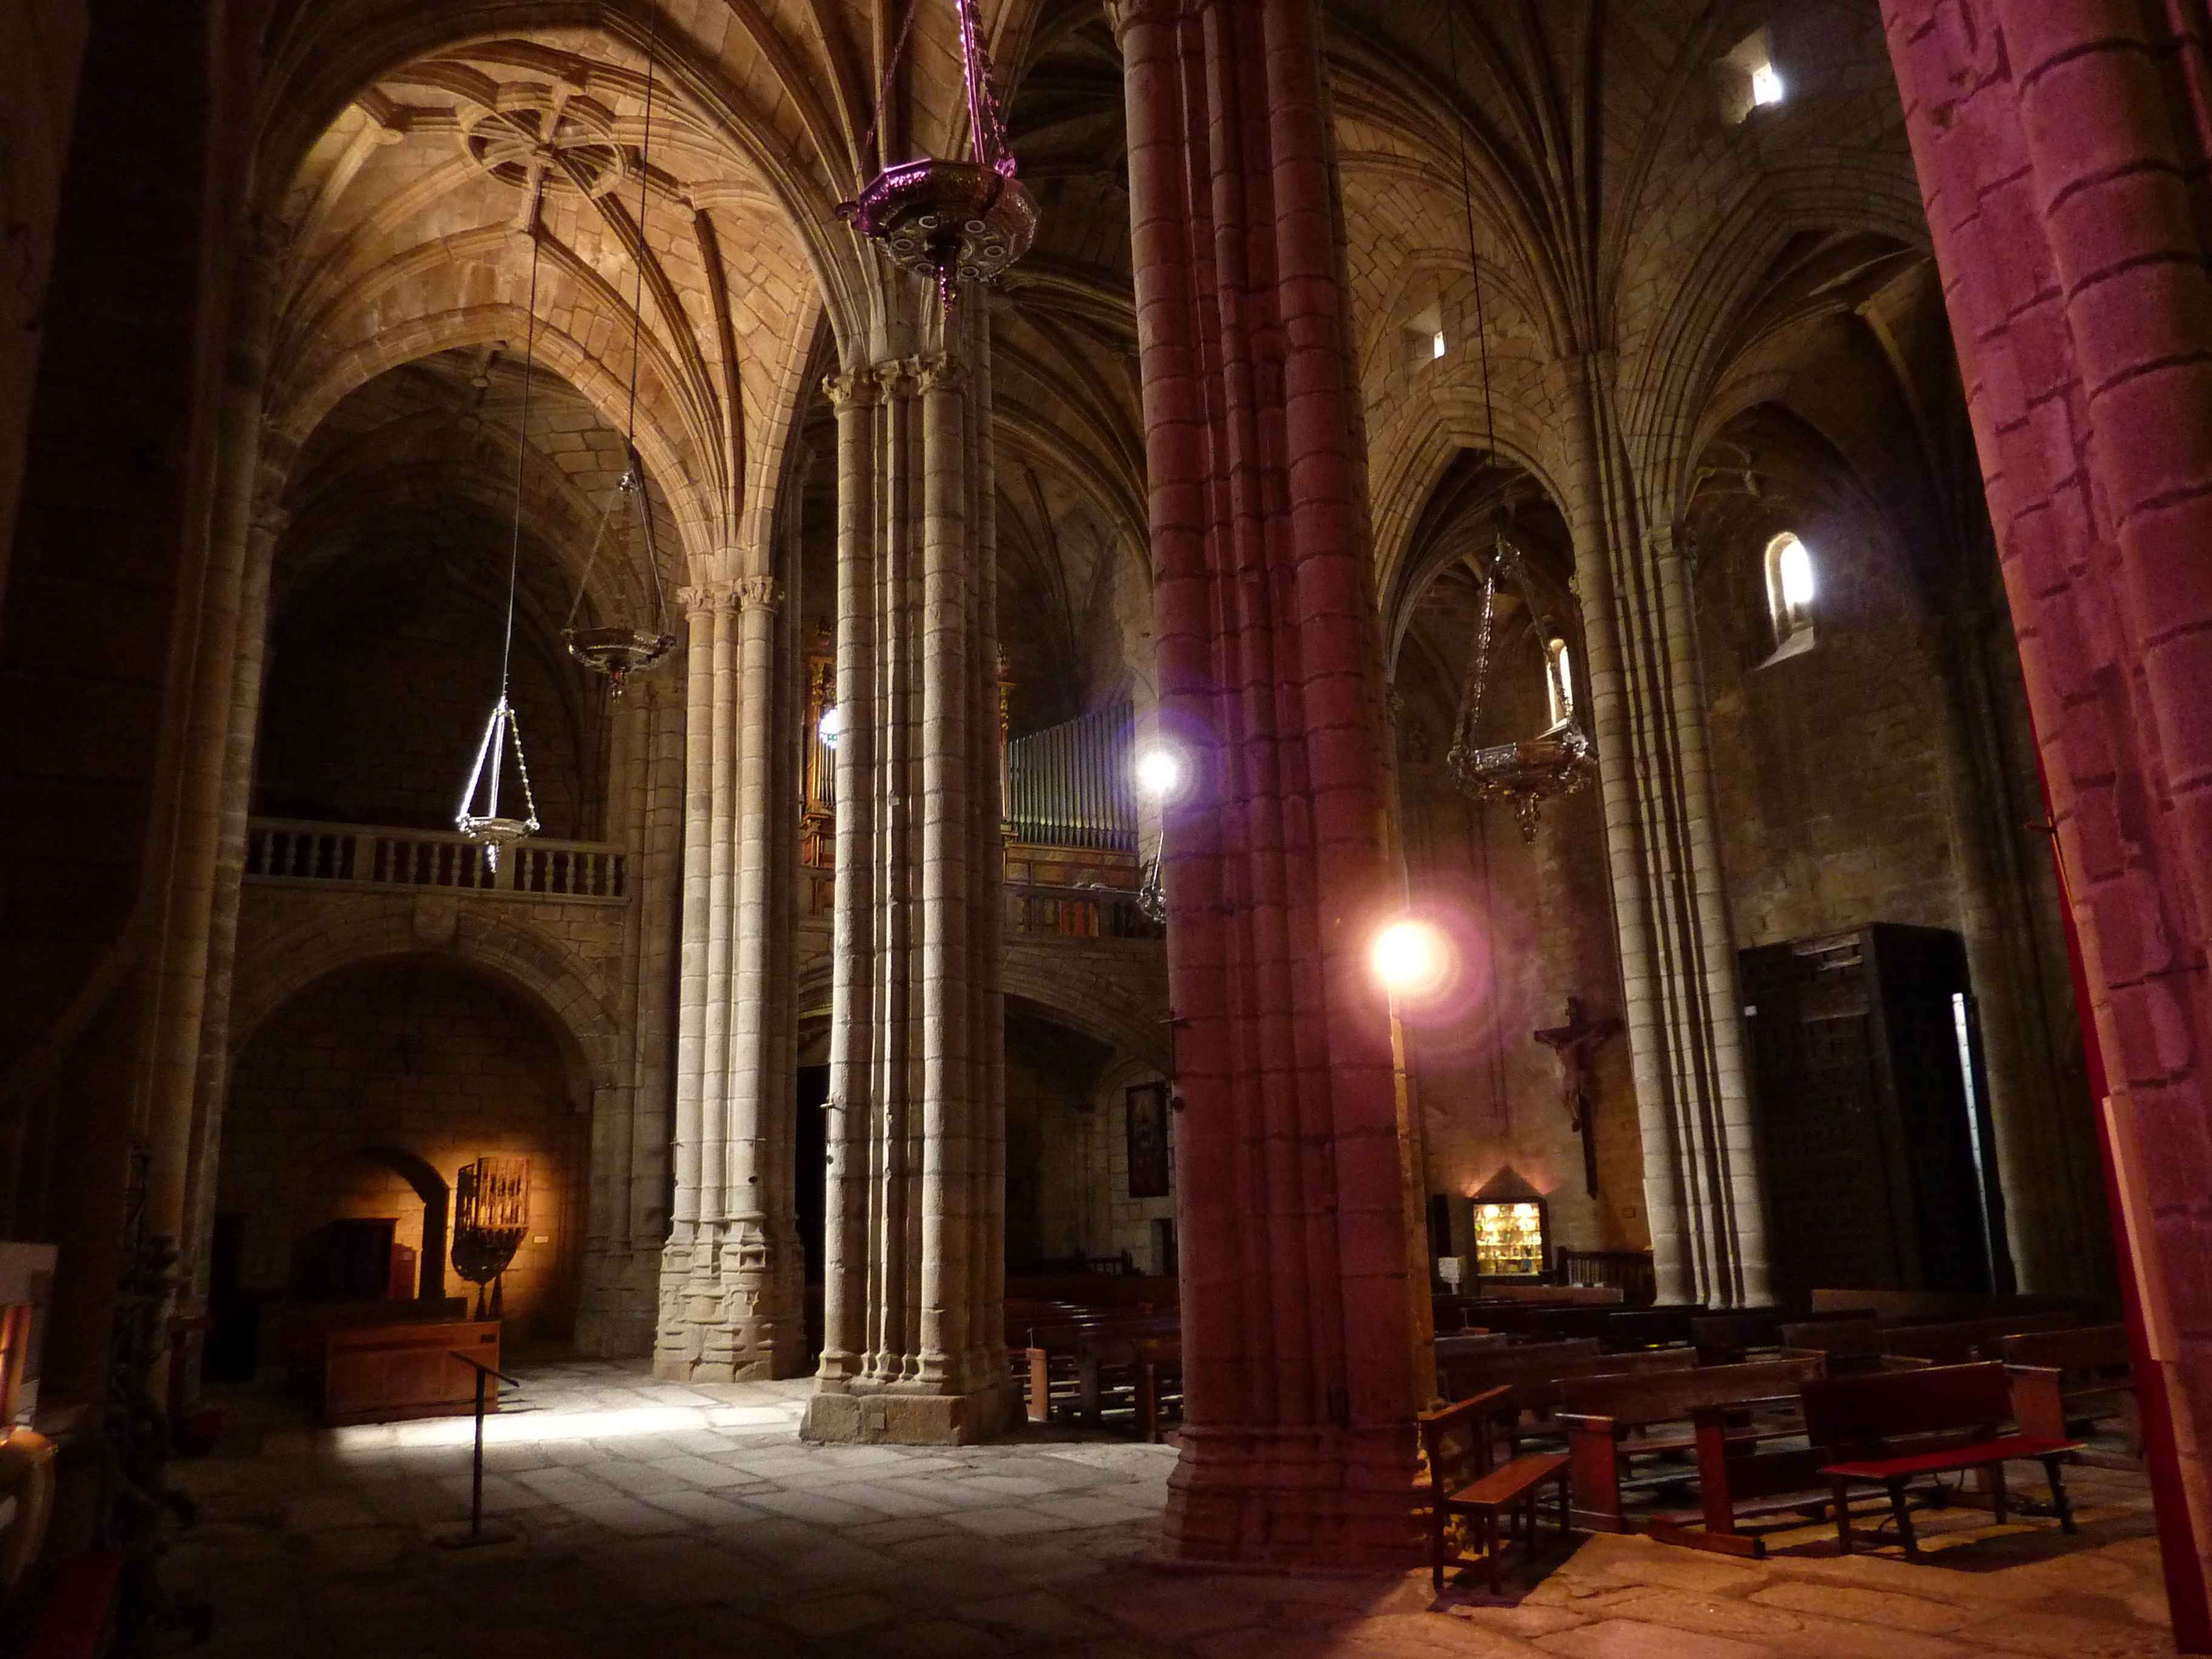 Eglise Photo Interieur Caceres en Images